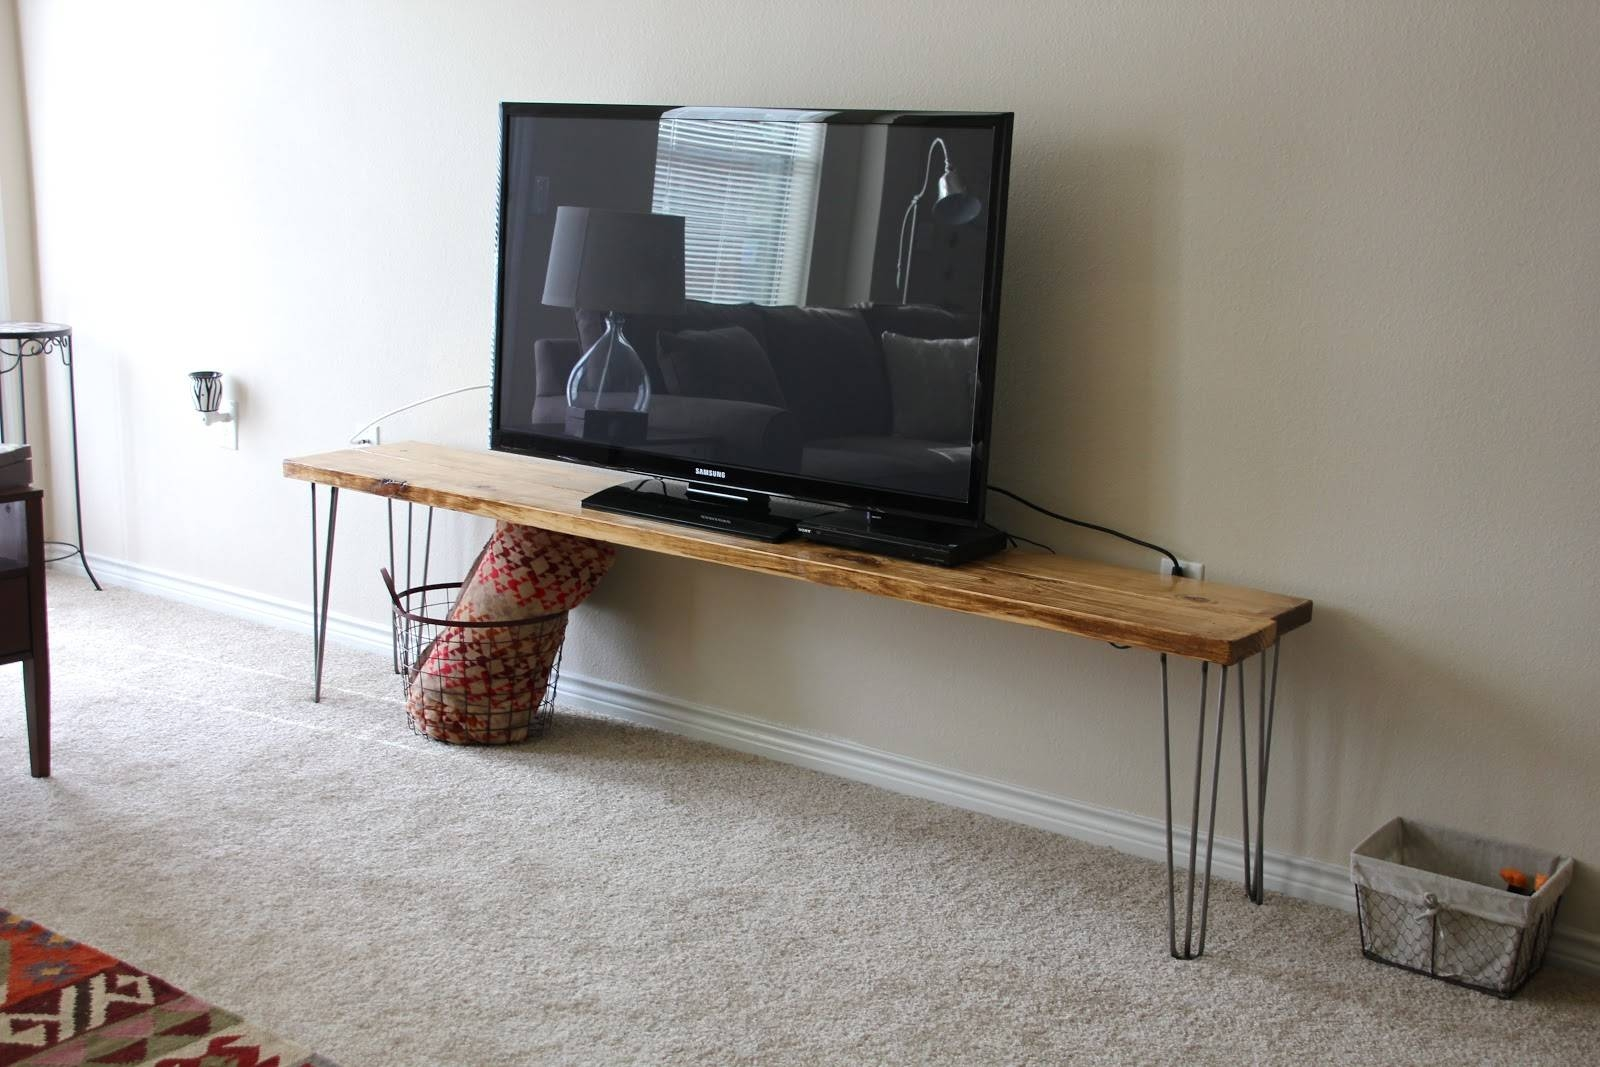 Cool Diy Narrow Wood Industrial Tv Stands With Hairpin Legs Ideas in Hairpin Leg Tv Stands (Image 4 of 15)